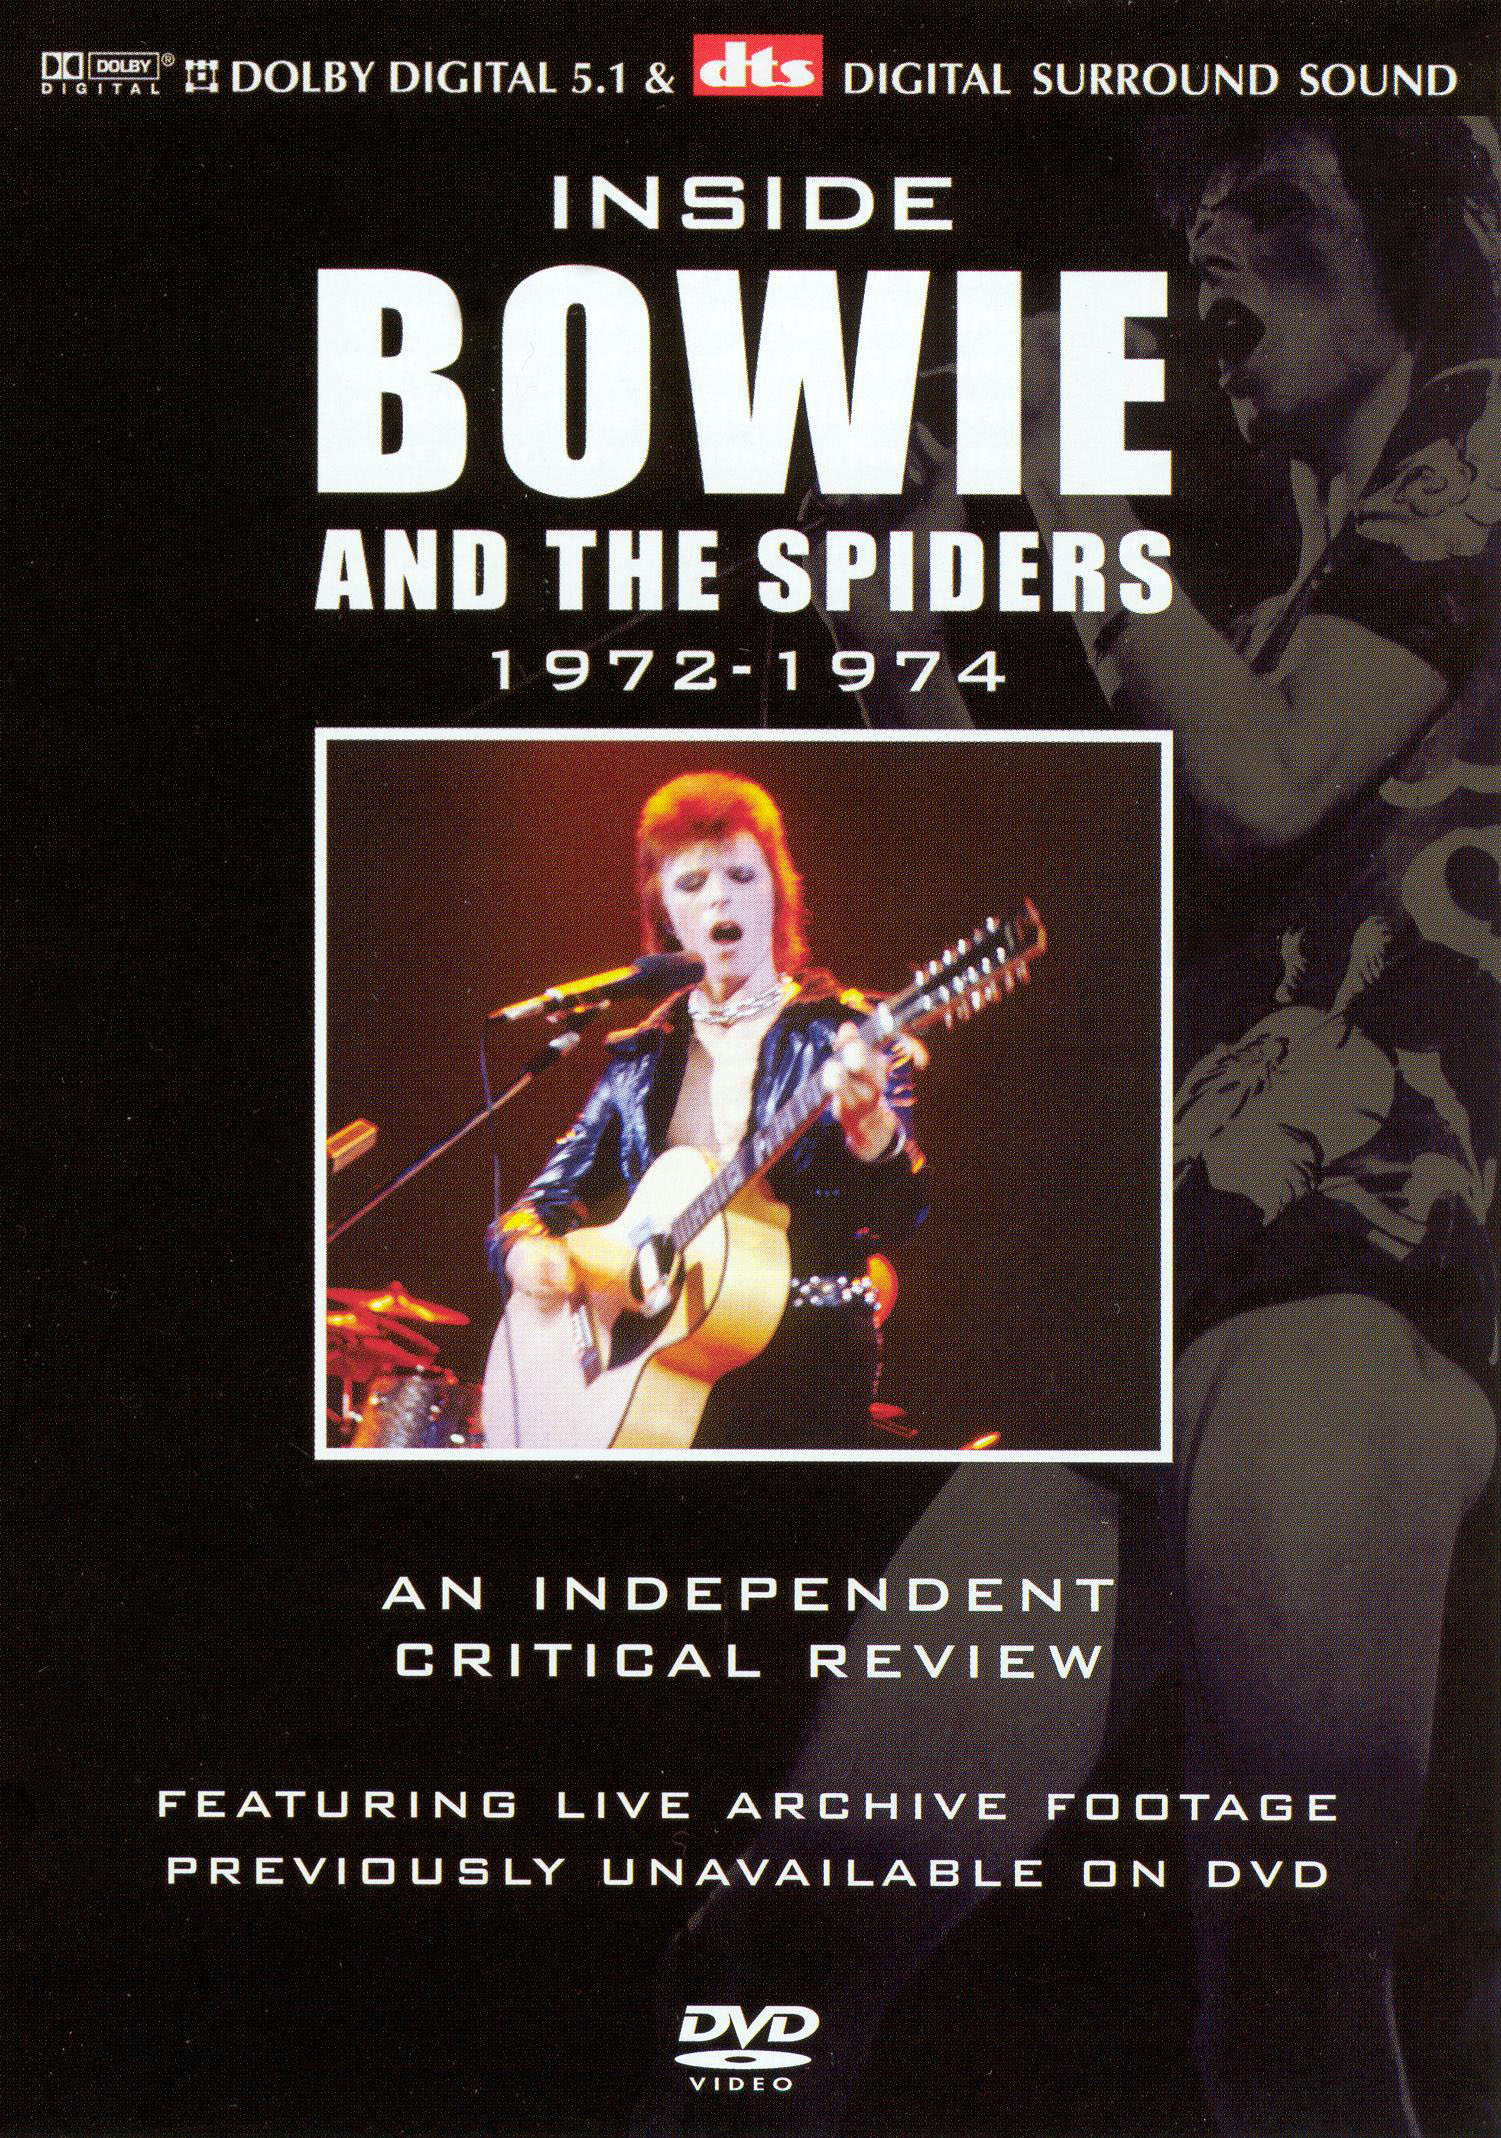 Inside David Bowie: A Critical Review 1972-1974